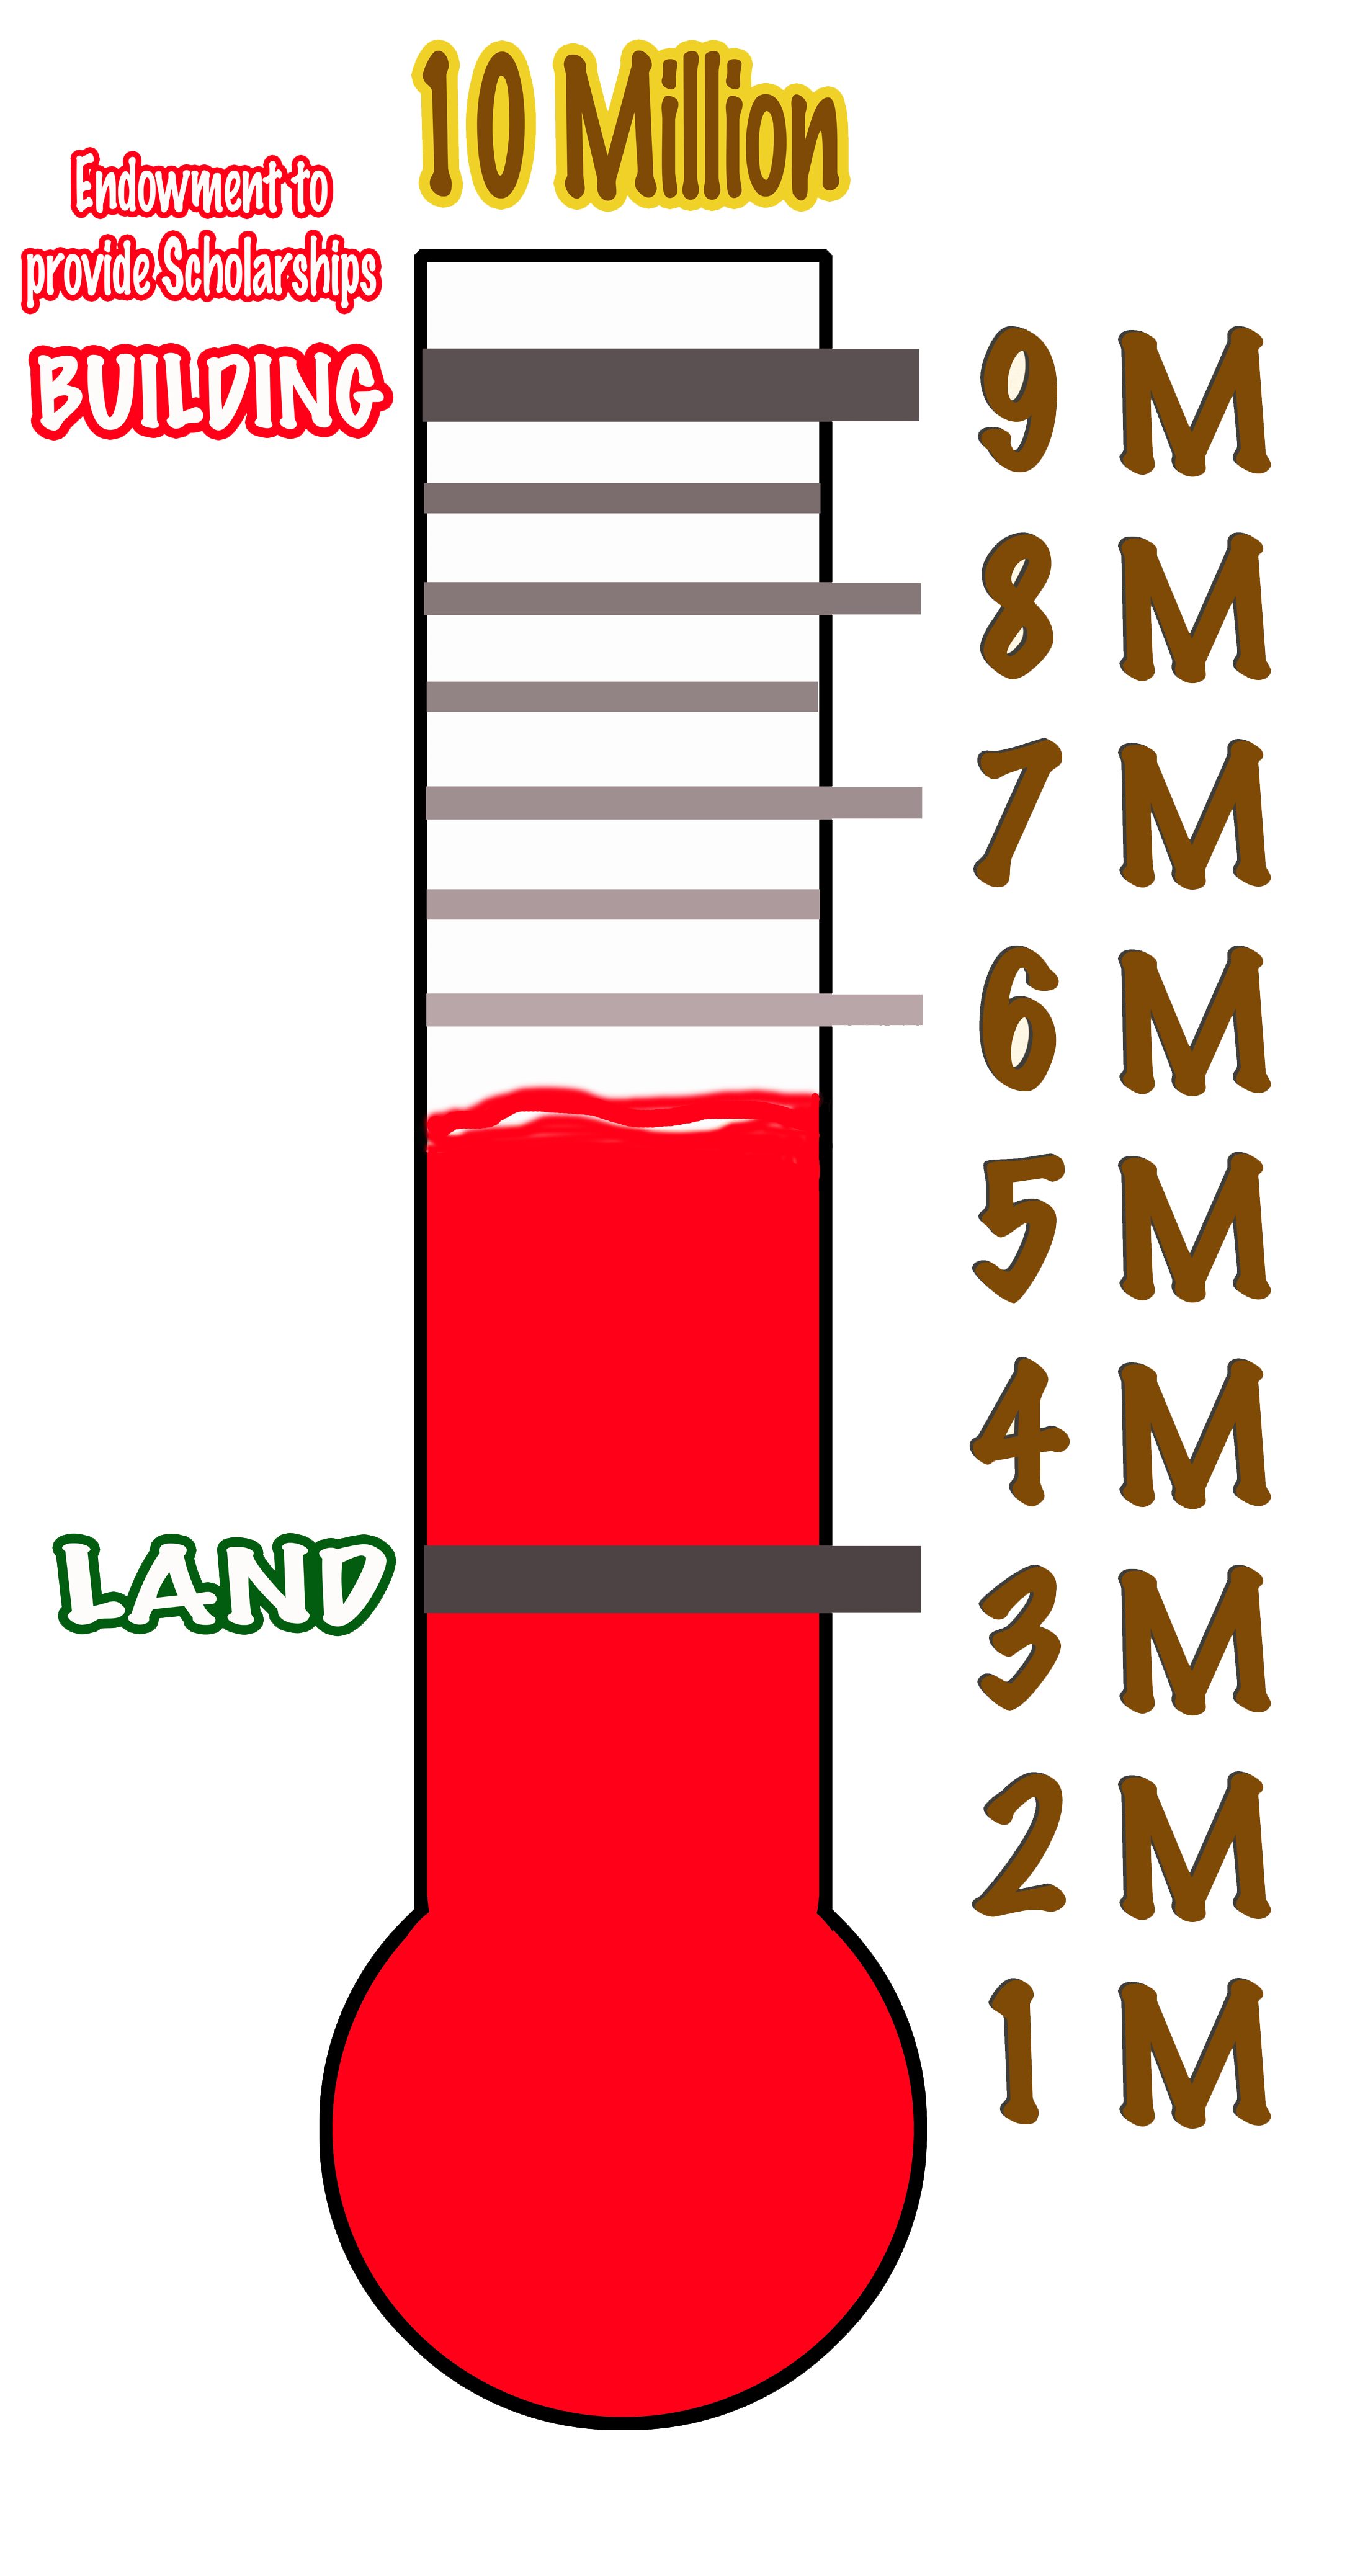 Thermometer clip art transparent background. Capital campaign environmental nature